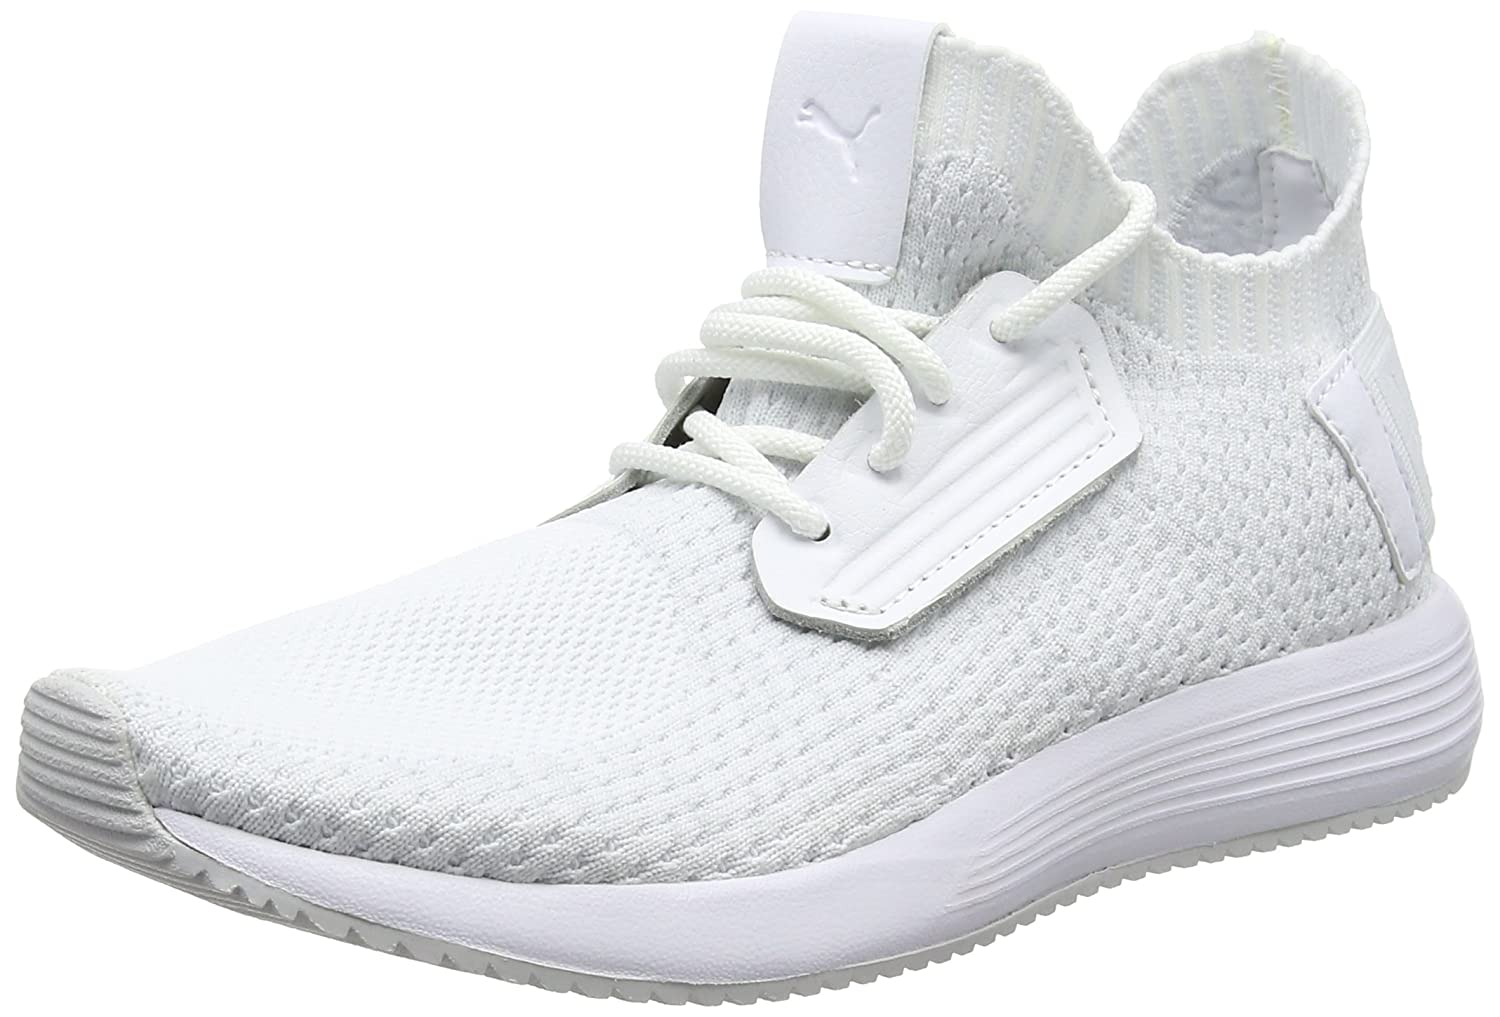 TALLA 42.5 EU. Puma Uprise Knit, Zapatillas Unisex Adulto